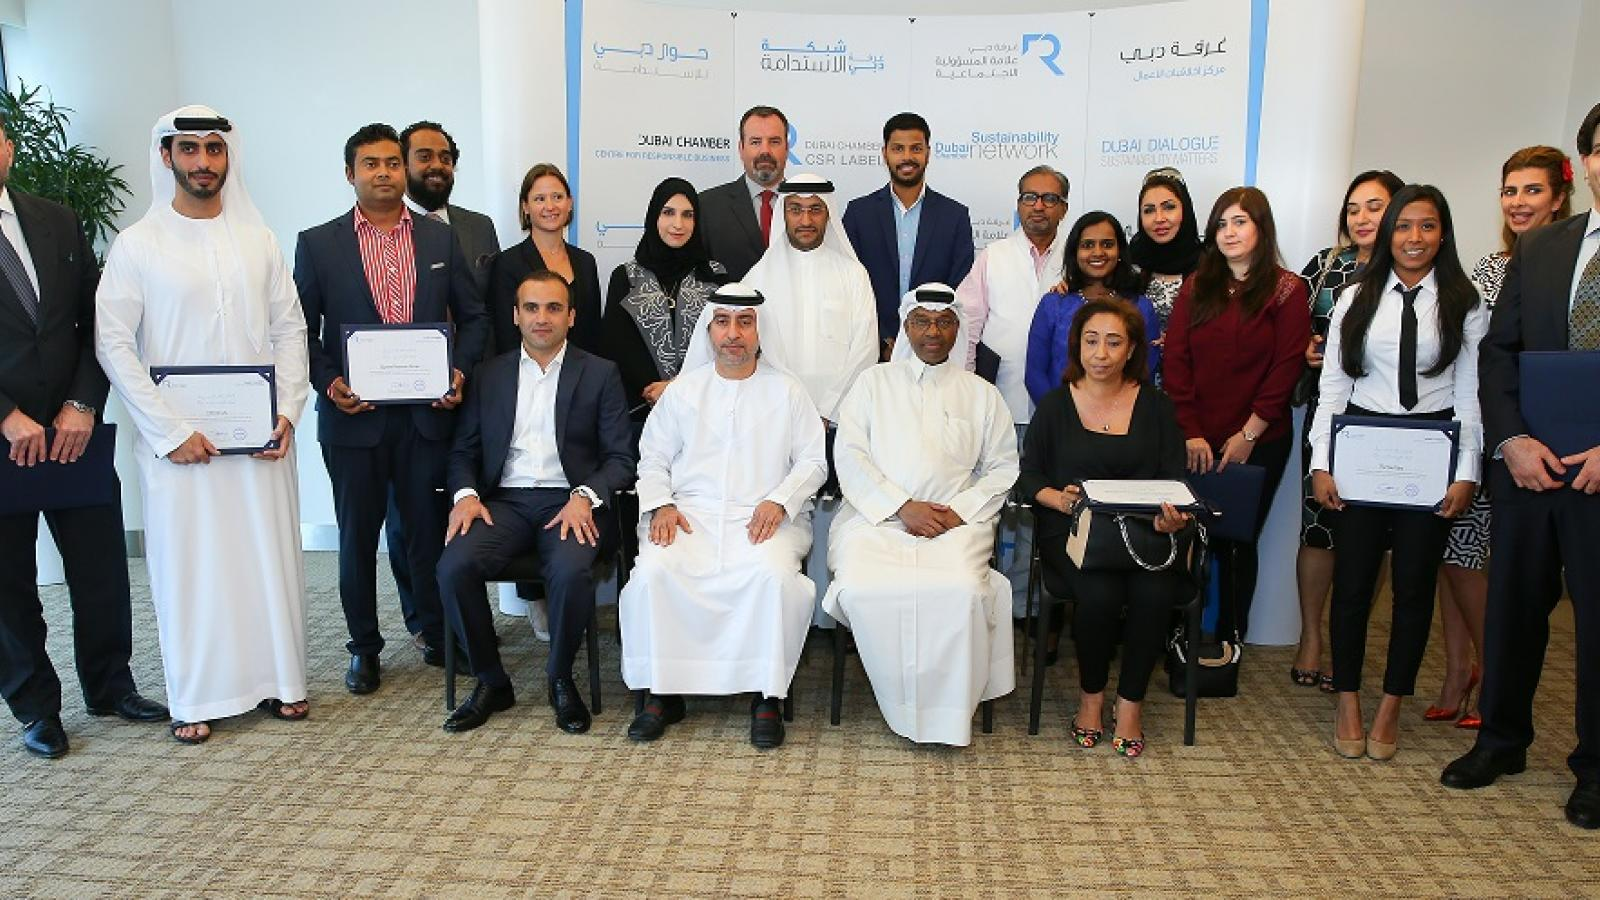 QBG UAE Achieves Corporate Social Responsibility (CSR) Label 2015